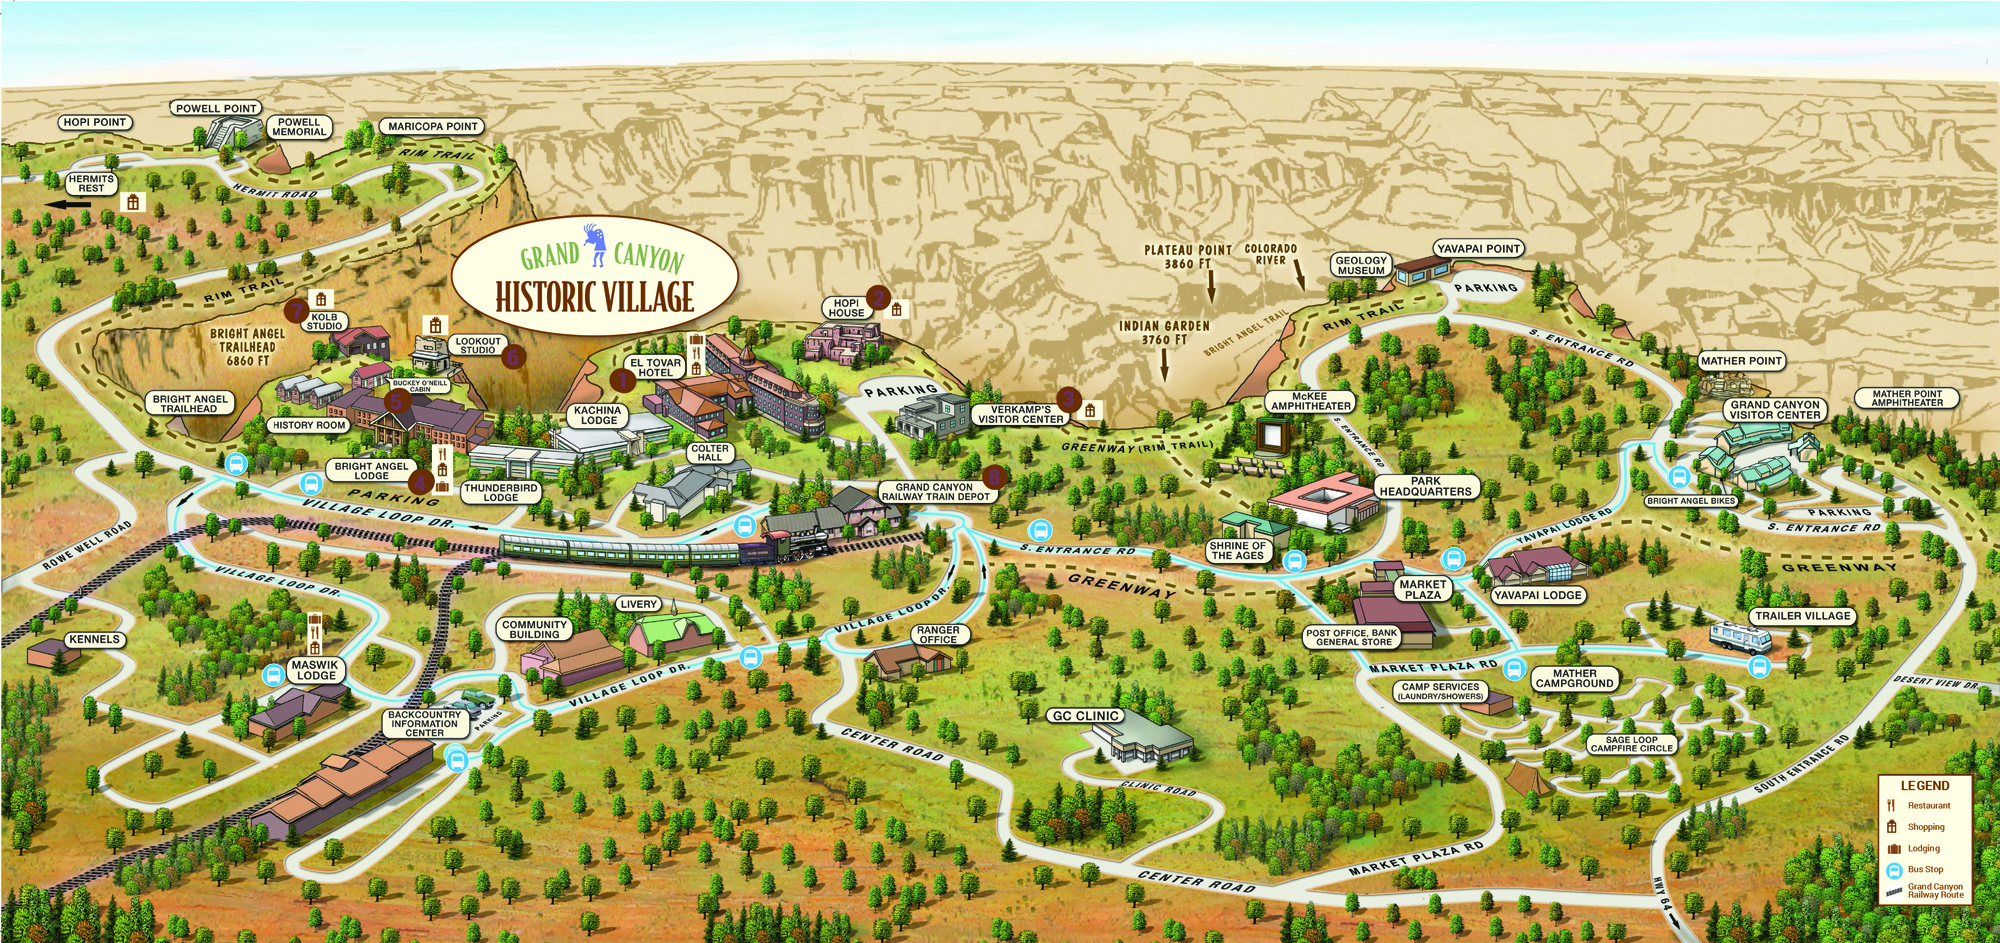 Brochures And Downloads Grand Canyon National Park Lodges